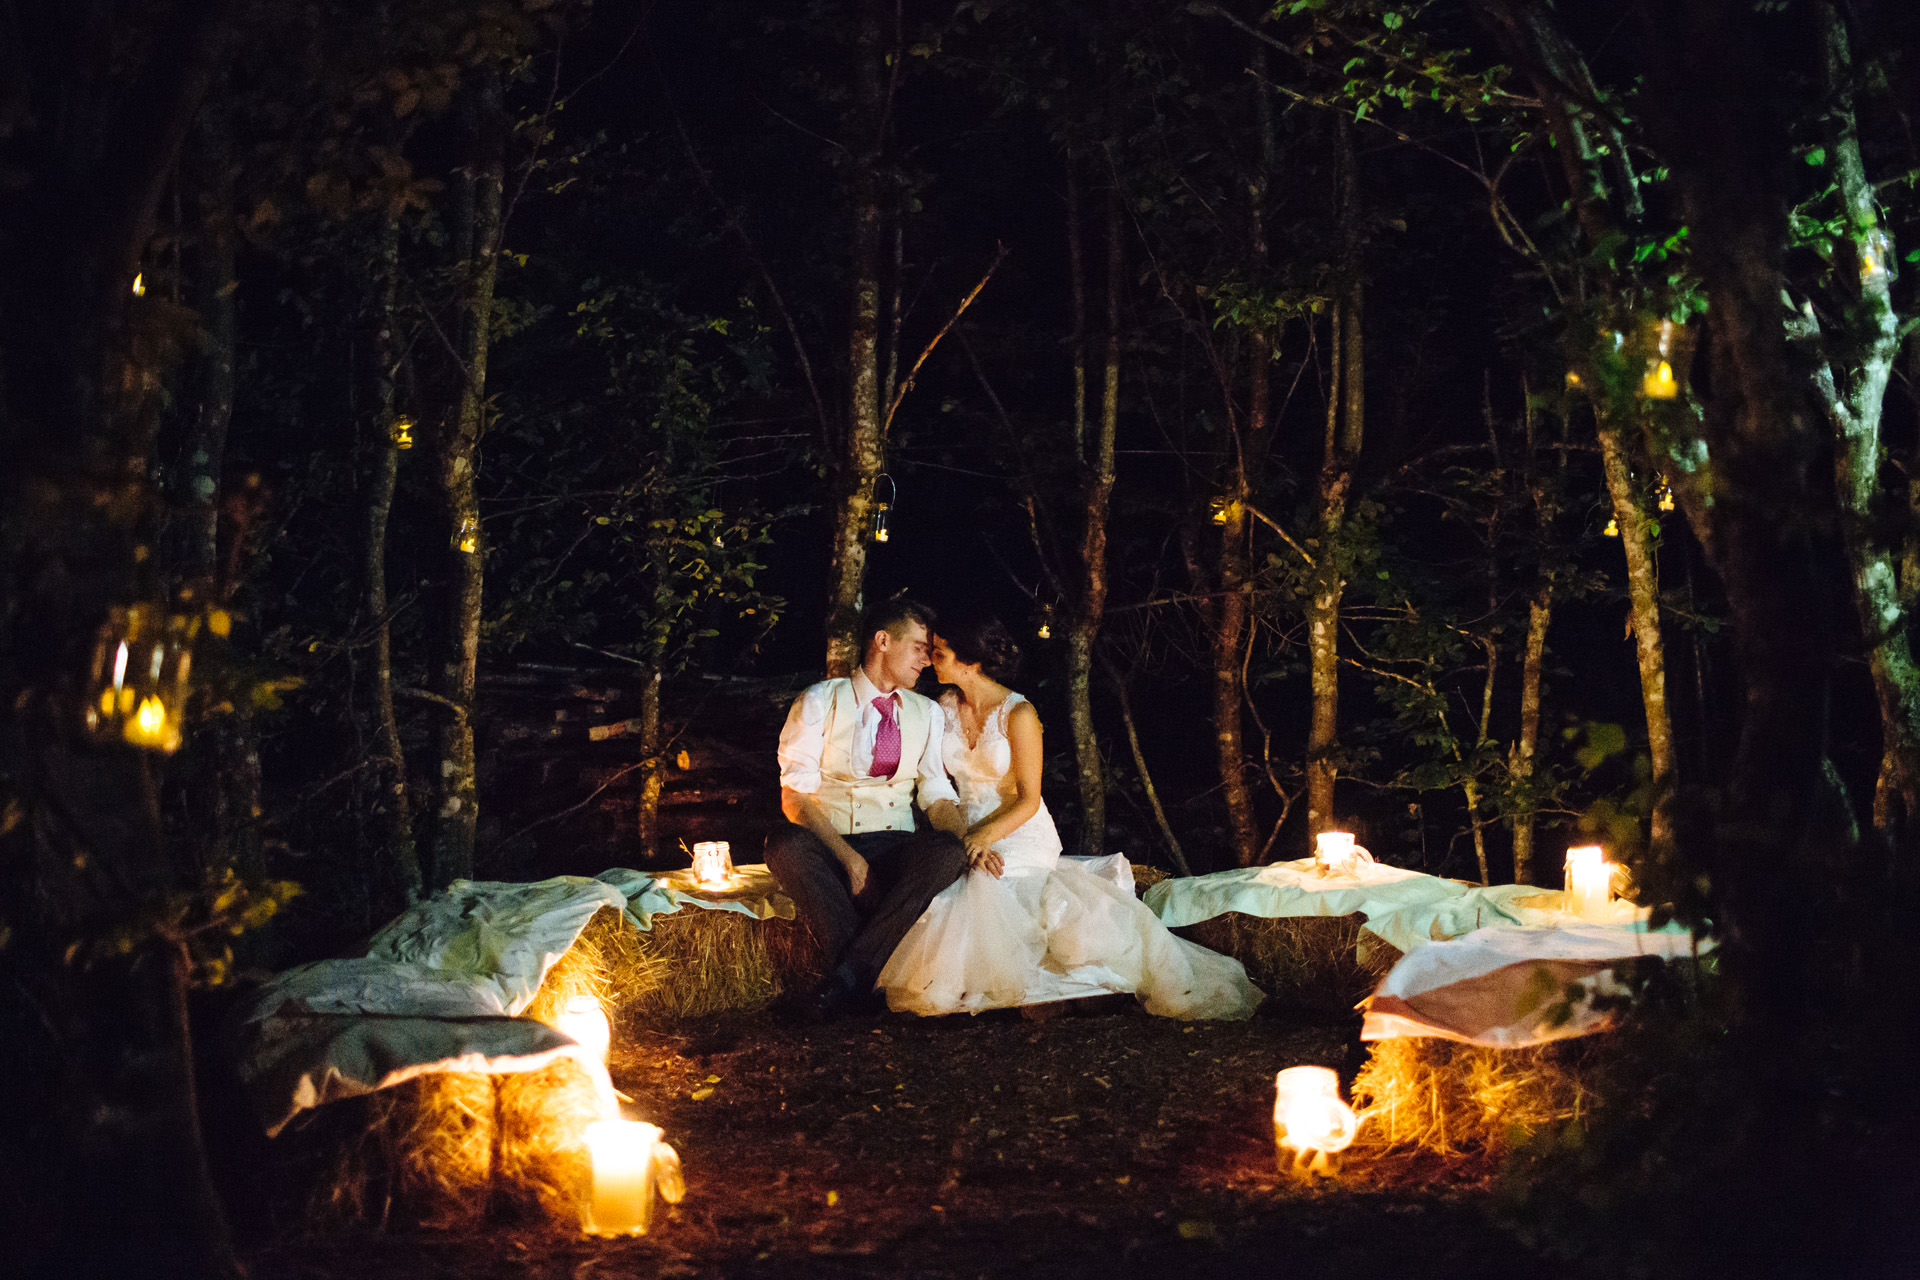 bride and groom candle lit wood at night